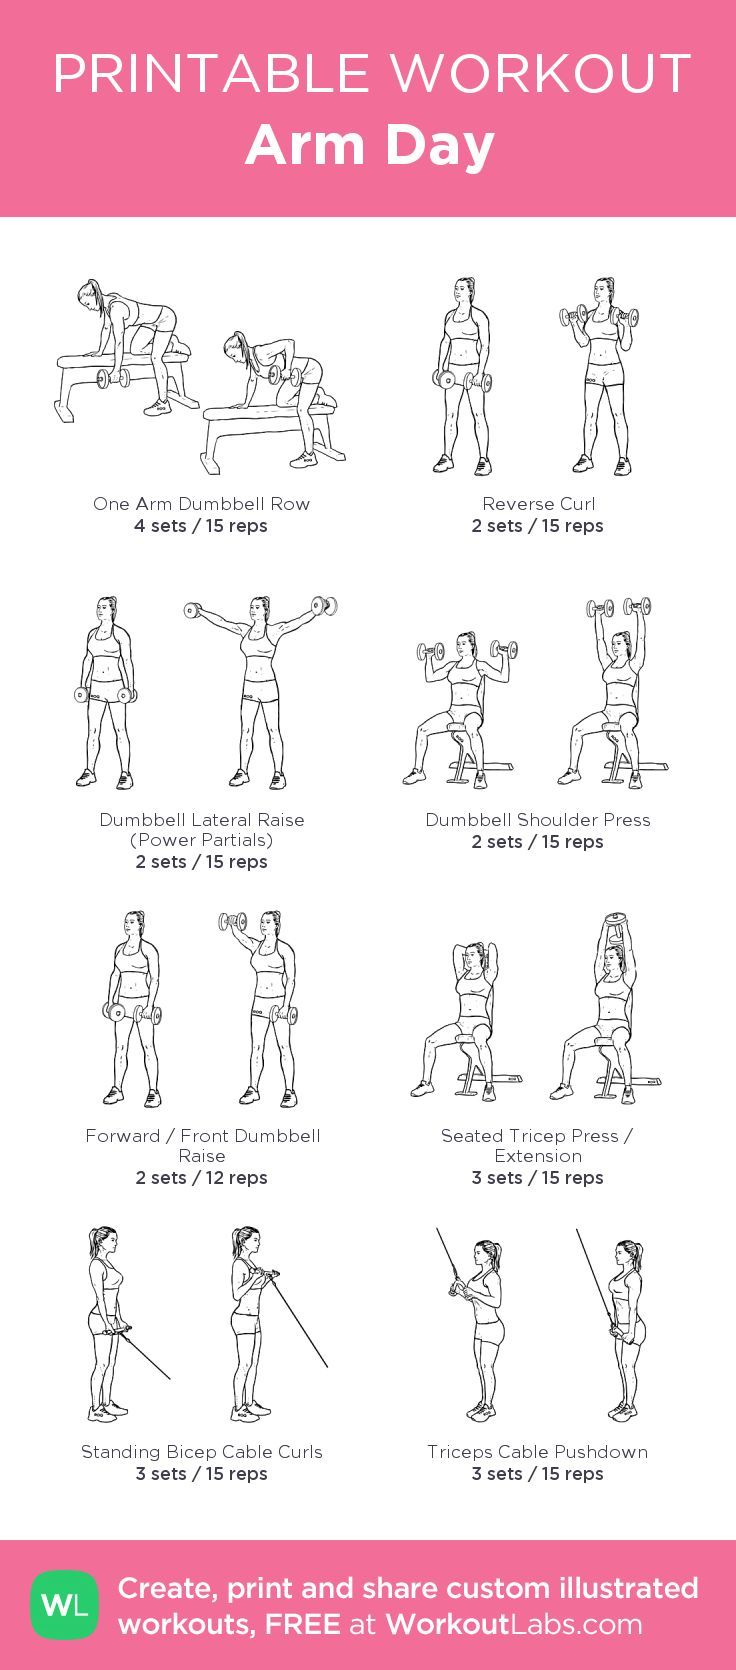 Arm Day: my custom printable workout by @WorkoutLabs: